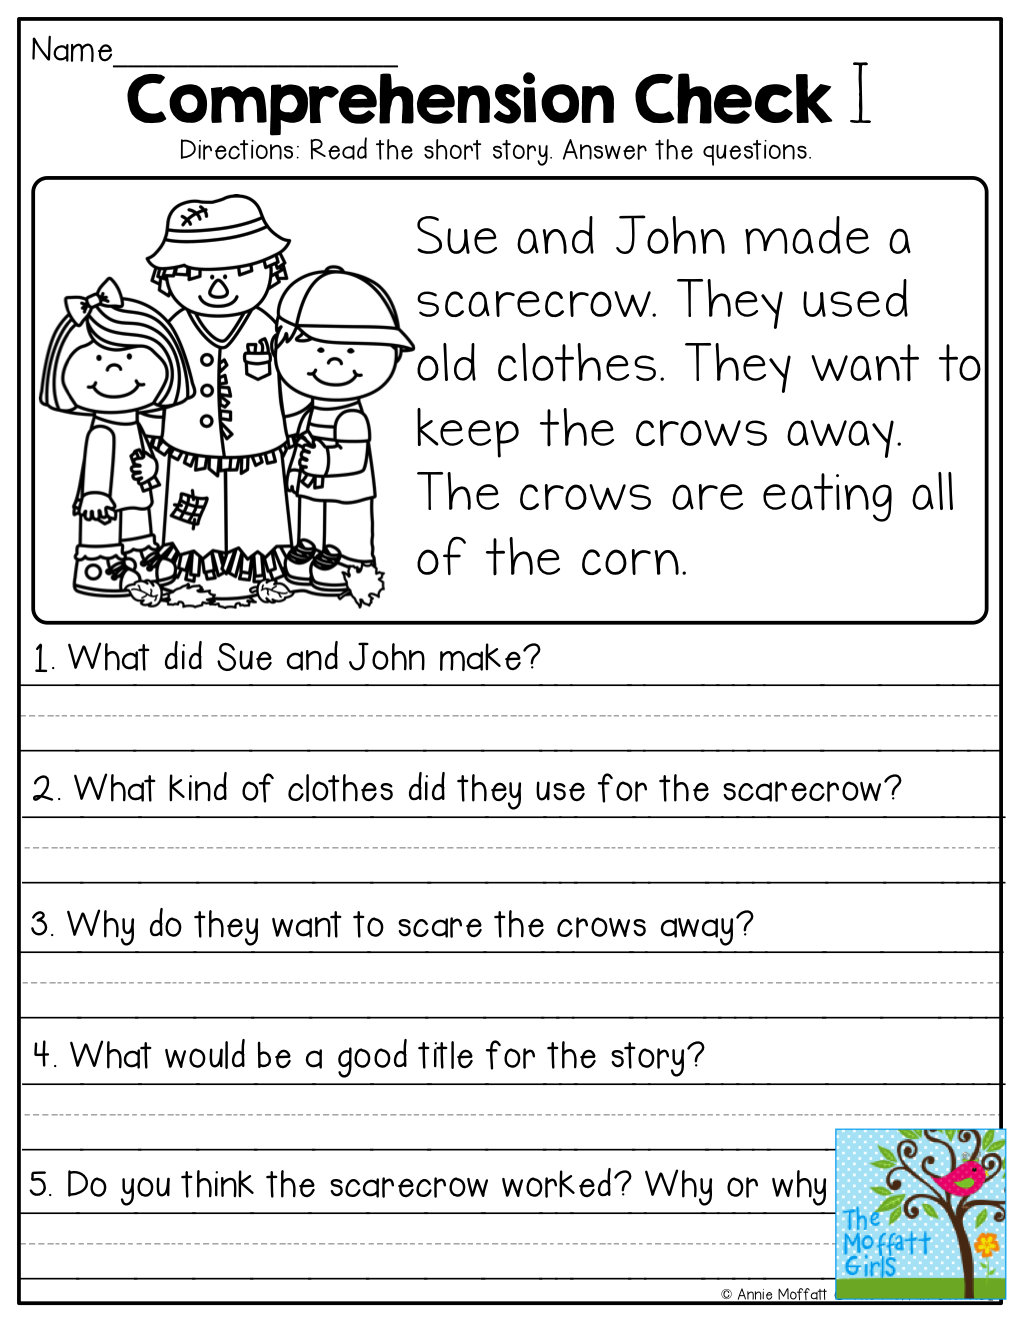 Workbooks using illustrations to understand text worksheets : Short Stories with comprehension questions! | Jassiah | Pinterest ...